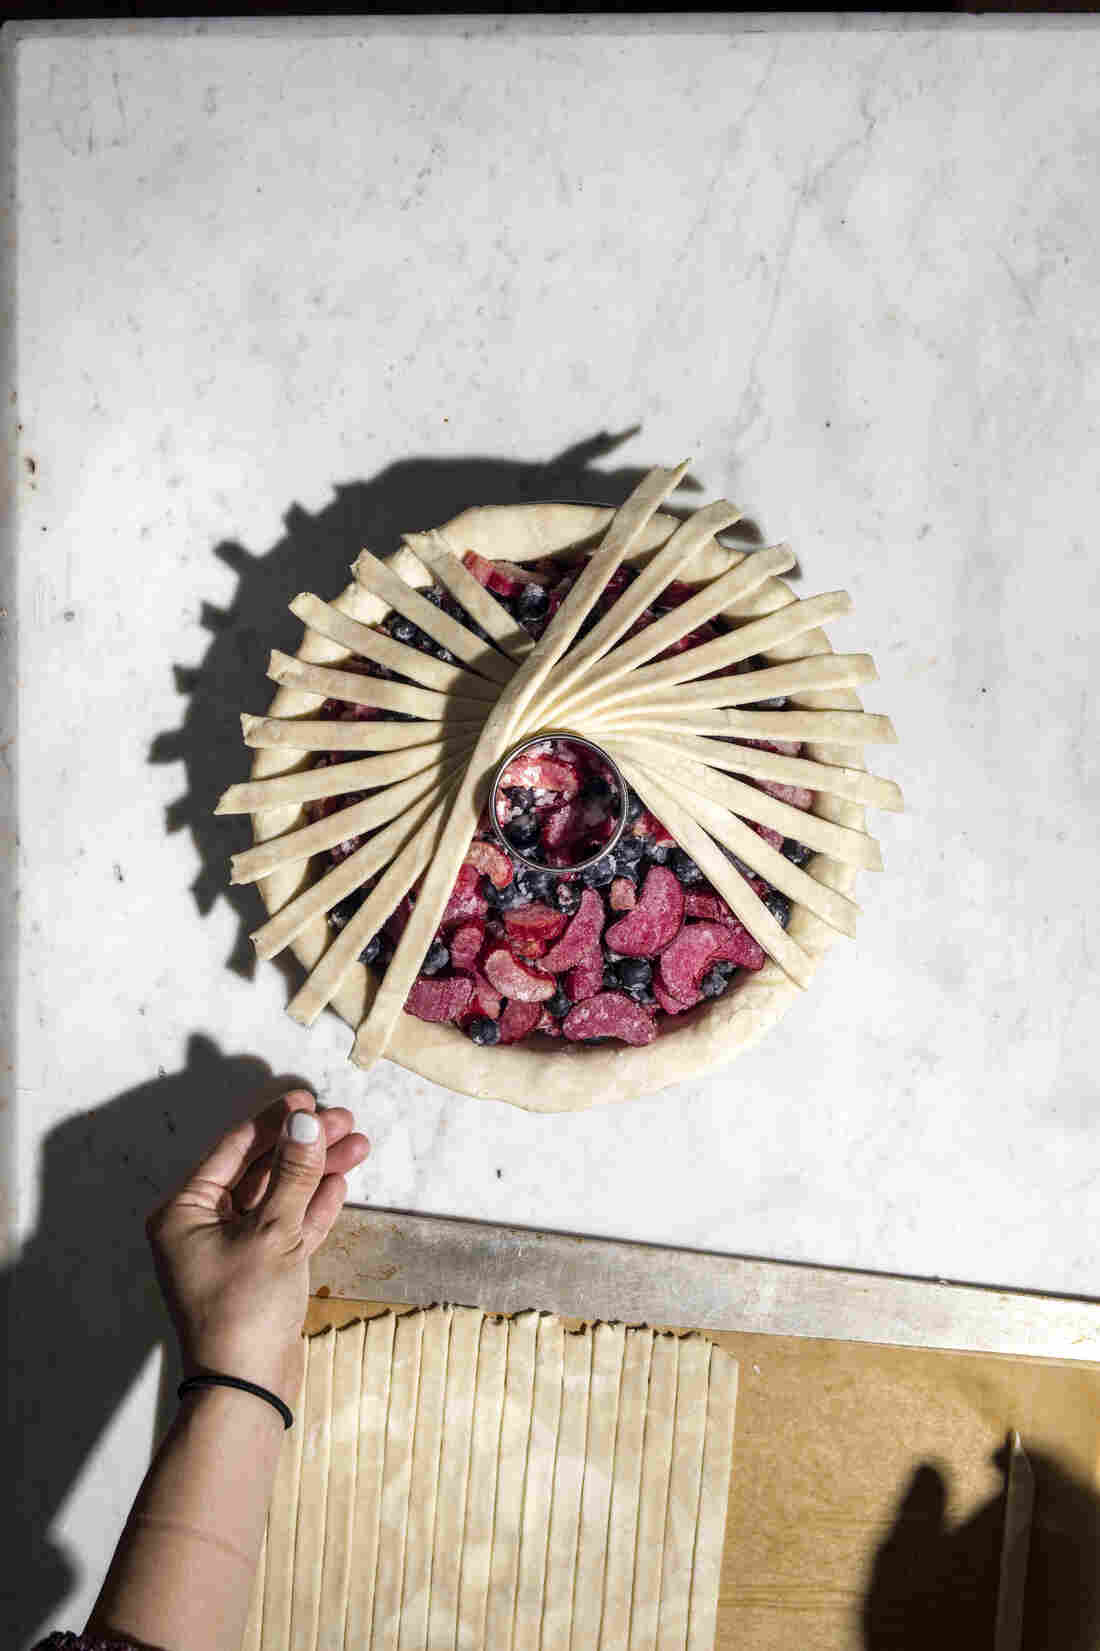 Continue laying dough strips in this fashion, working your way around the pie surface twice. Resist the urge to manually curve each strip. The optical illusion of the full design inspires a curved effect, but the individual strips should be maintained as straight lines.